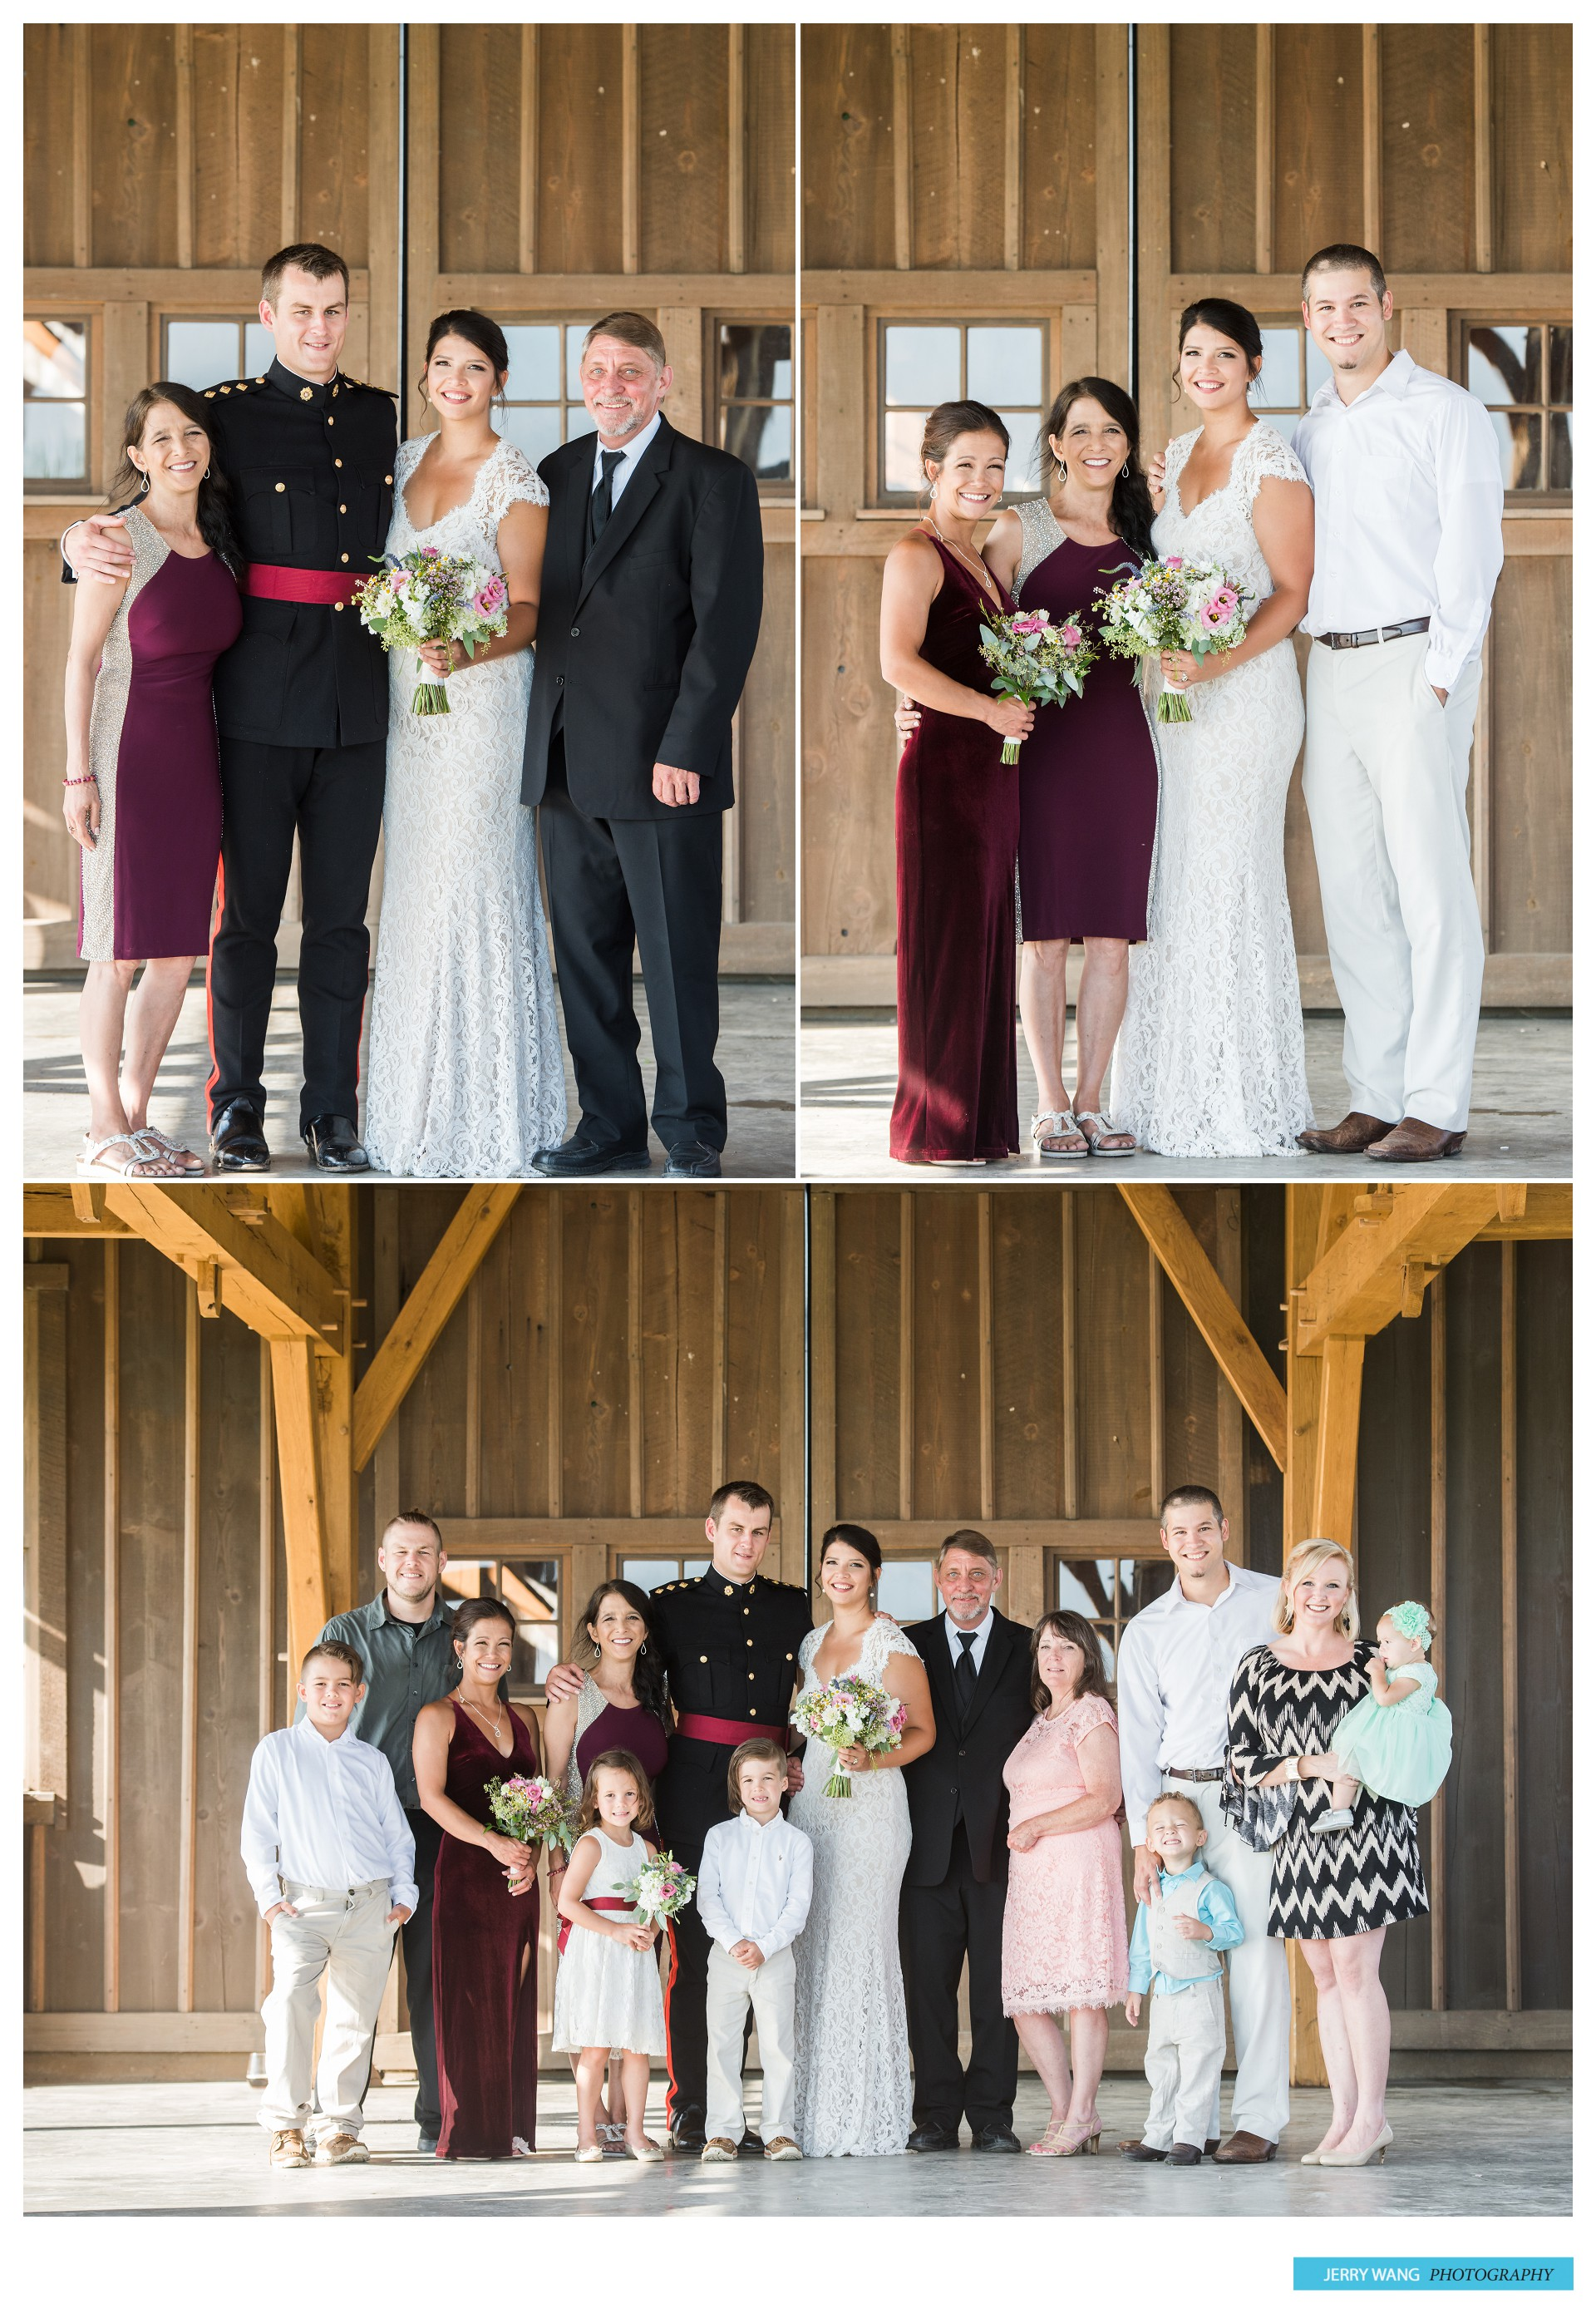 K&J | Weston Red Barn Farm Wedding | Weston Missouri ...